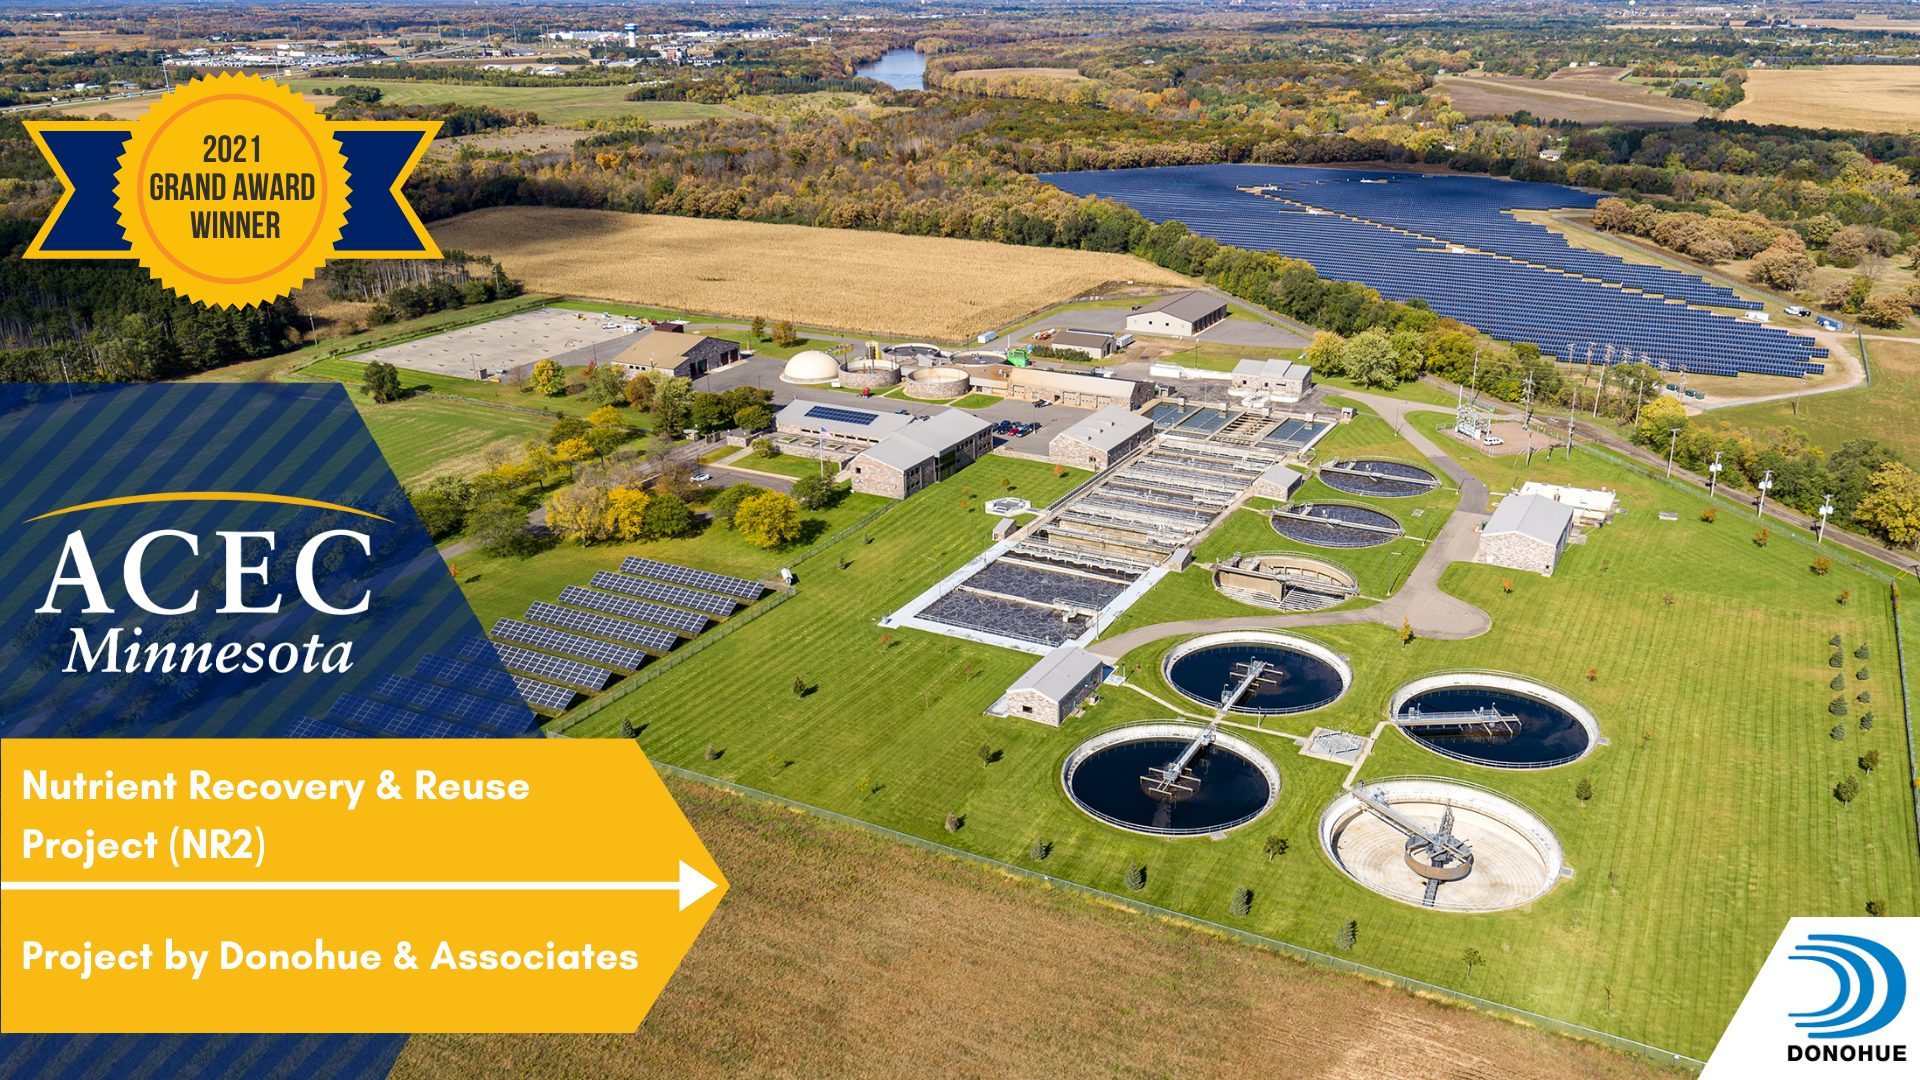 Nutrient Recovery & Reuse Project (NR2), Donohue & Associates (3)